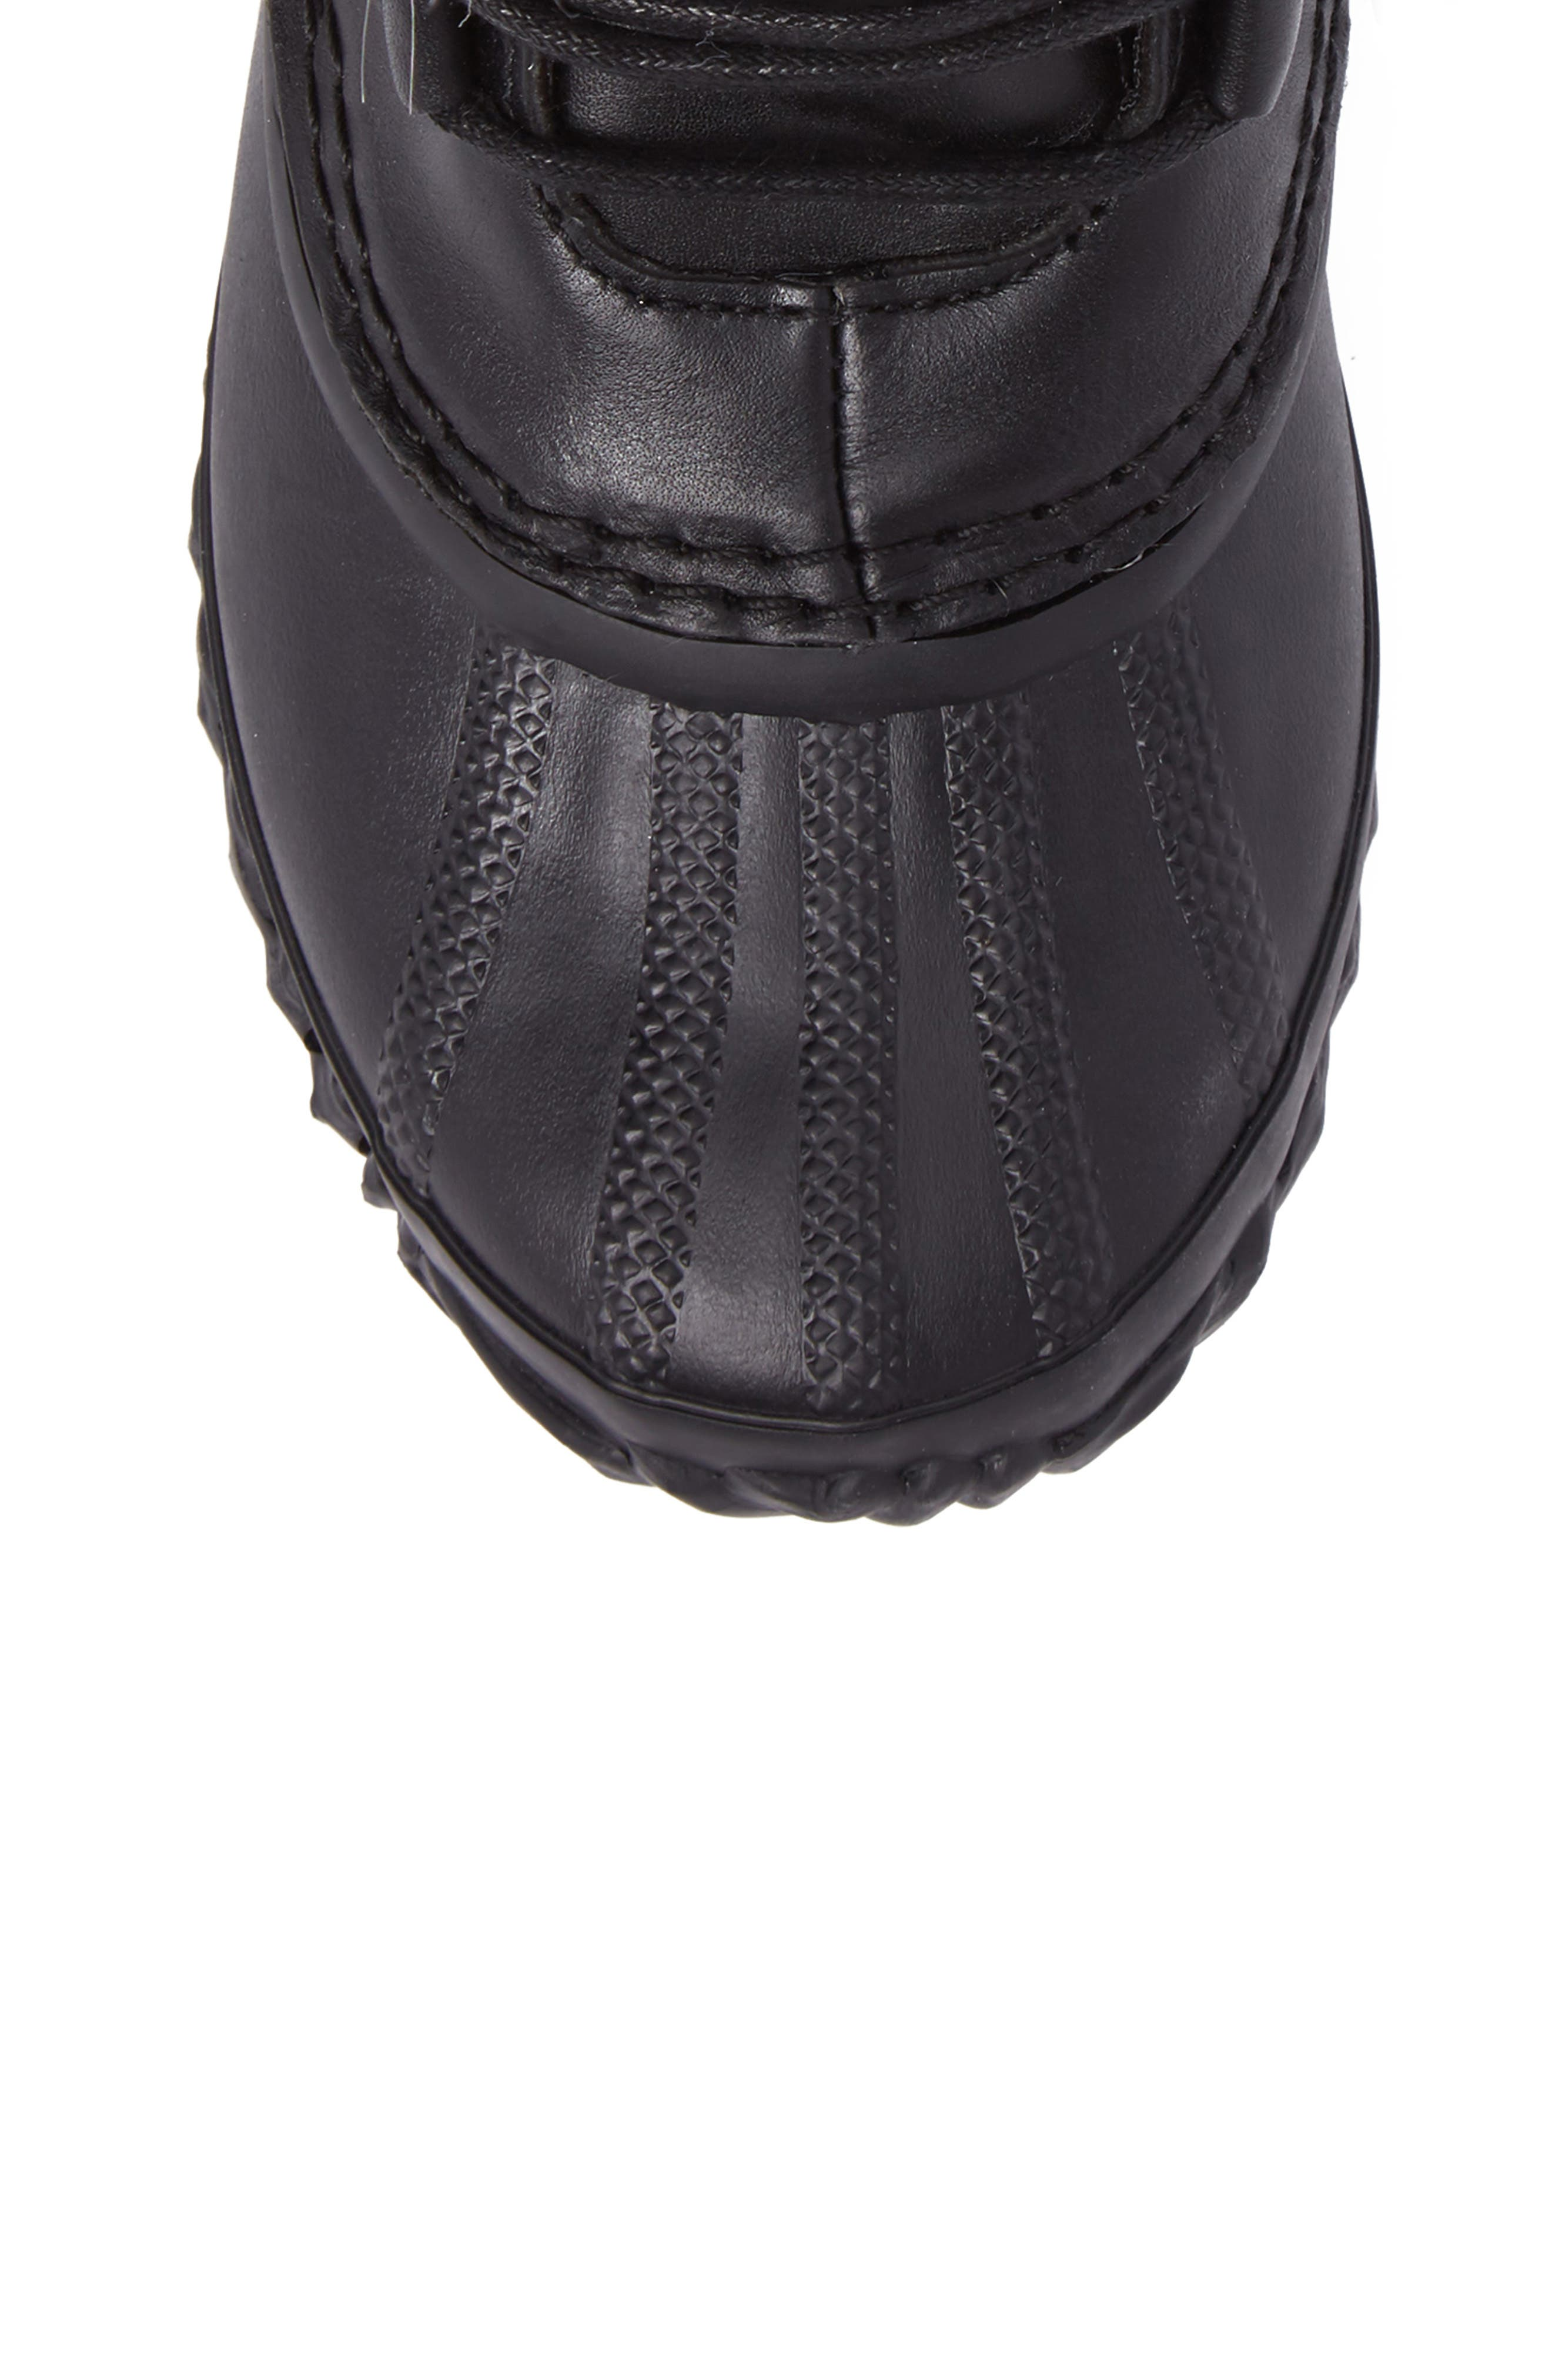 Out 'N About Waterproof Luxe Bootie,                             Alternate thumbnail 5, color,                             Black/ Sea Salt